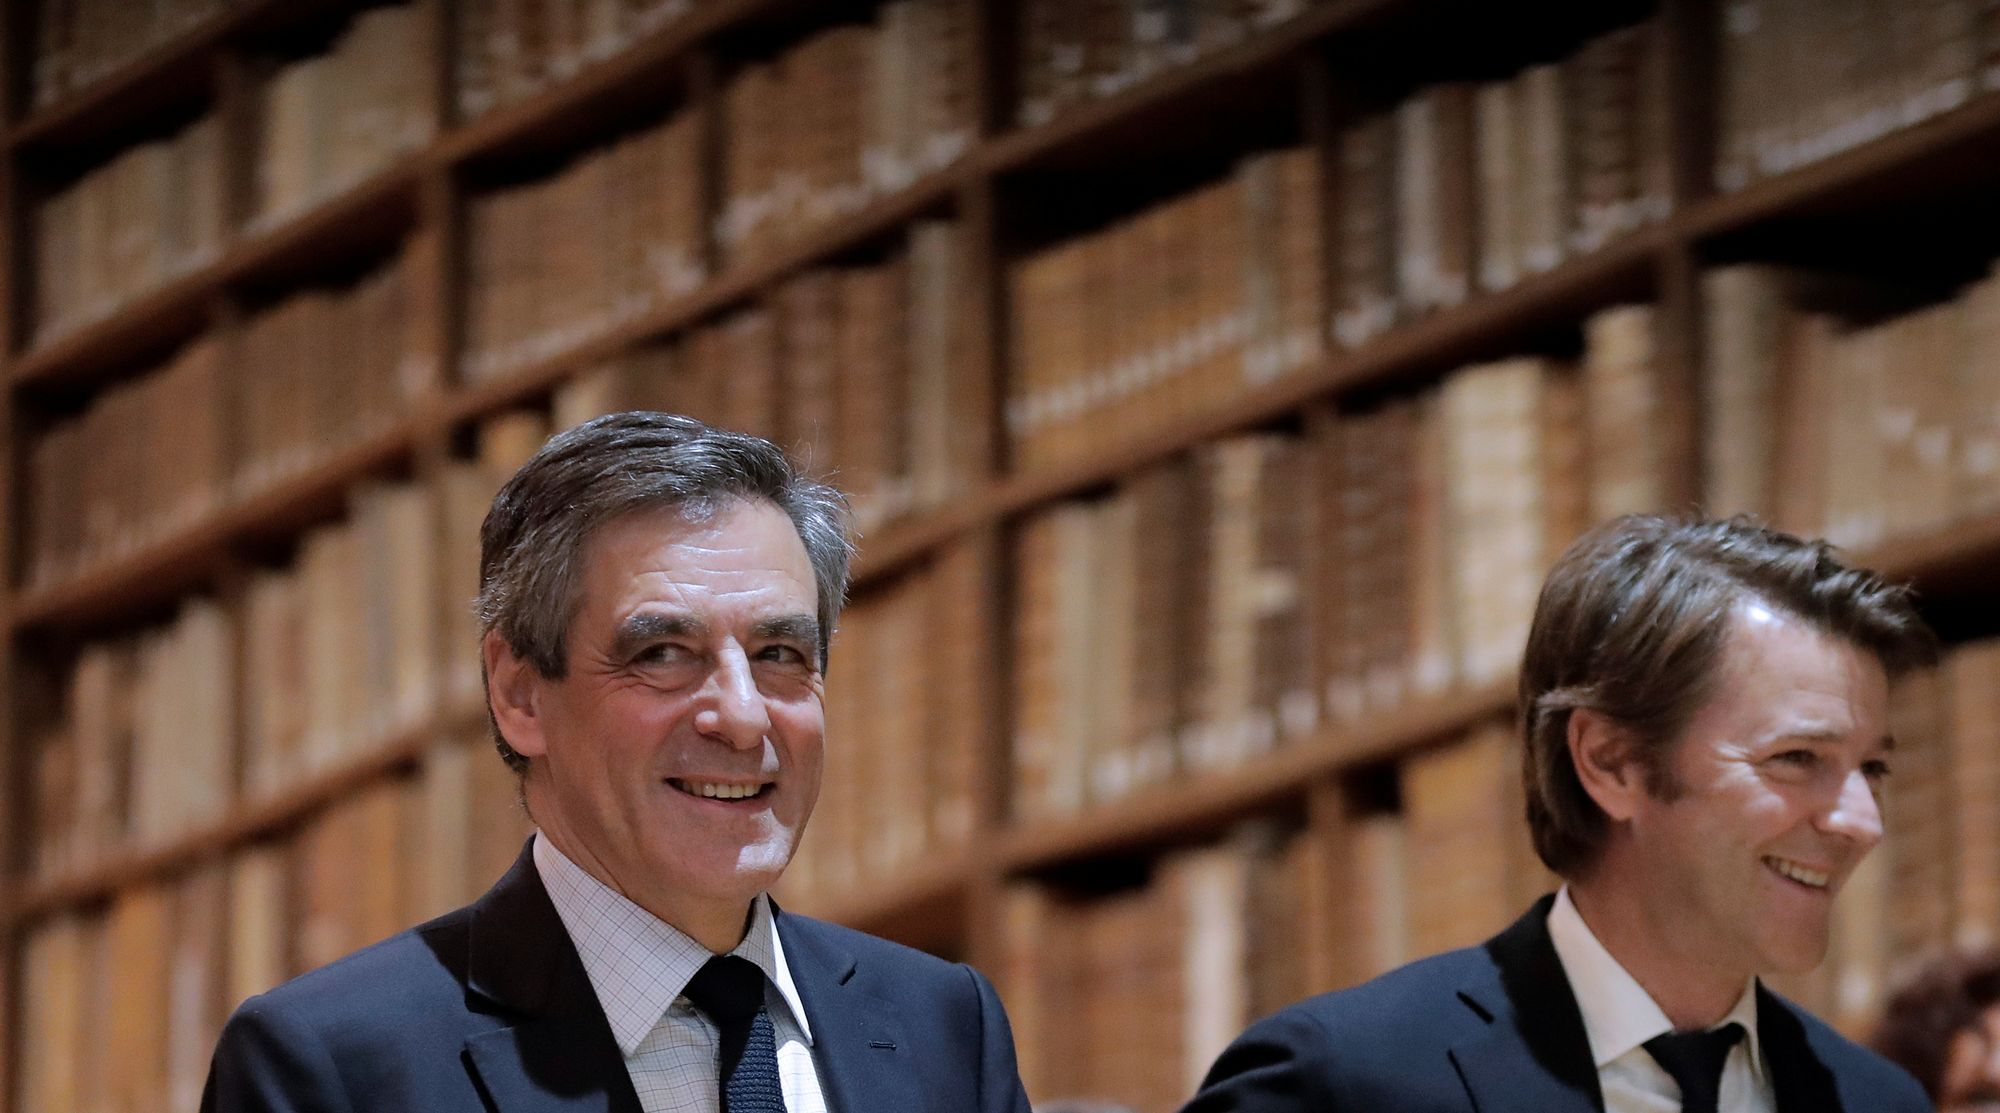 Affaire Penelope Fillon: EN DIRECT